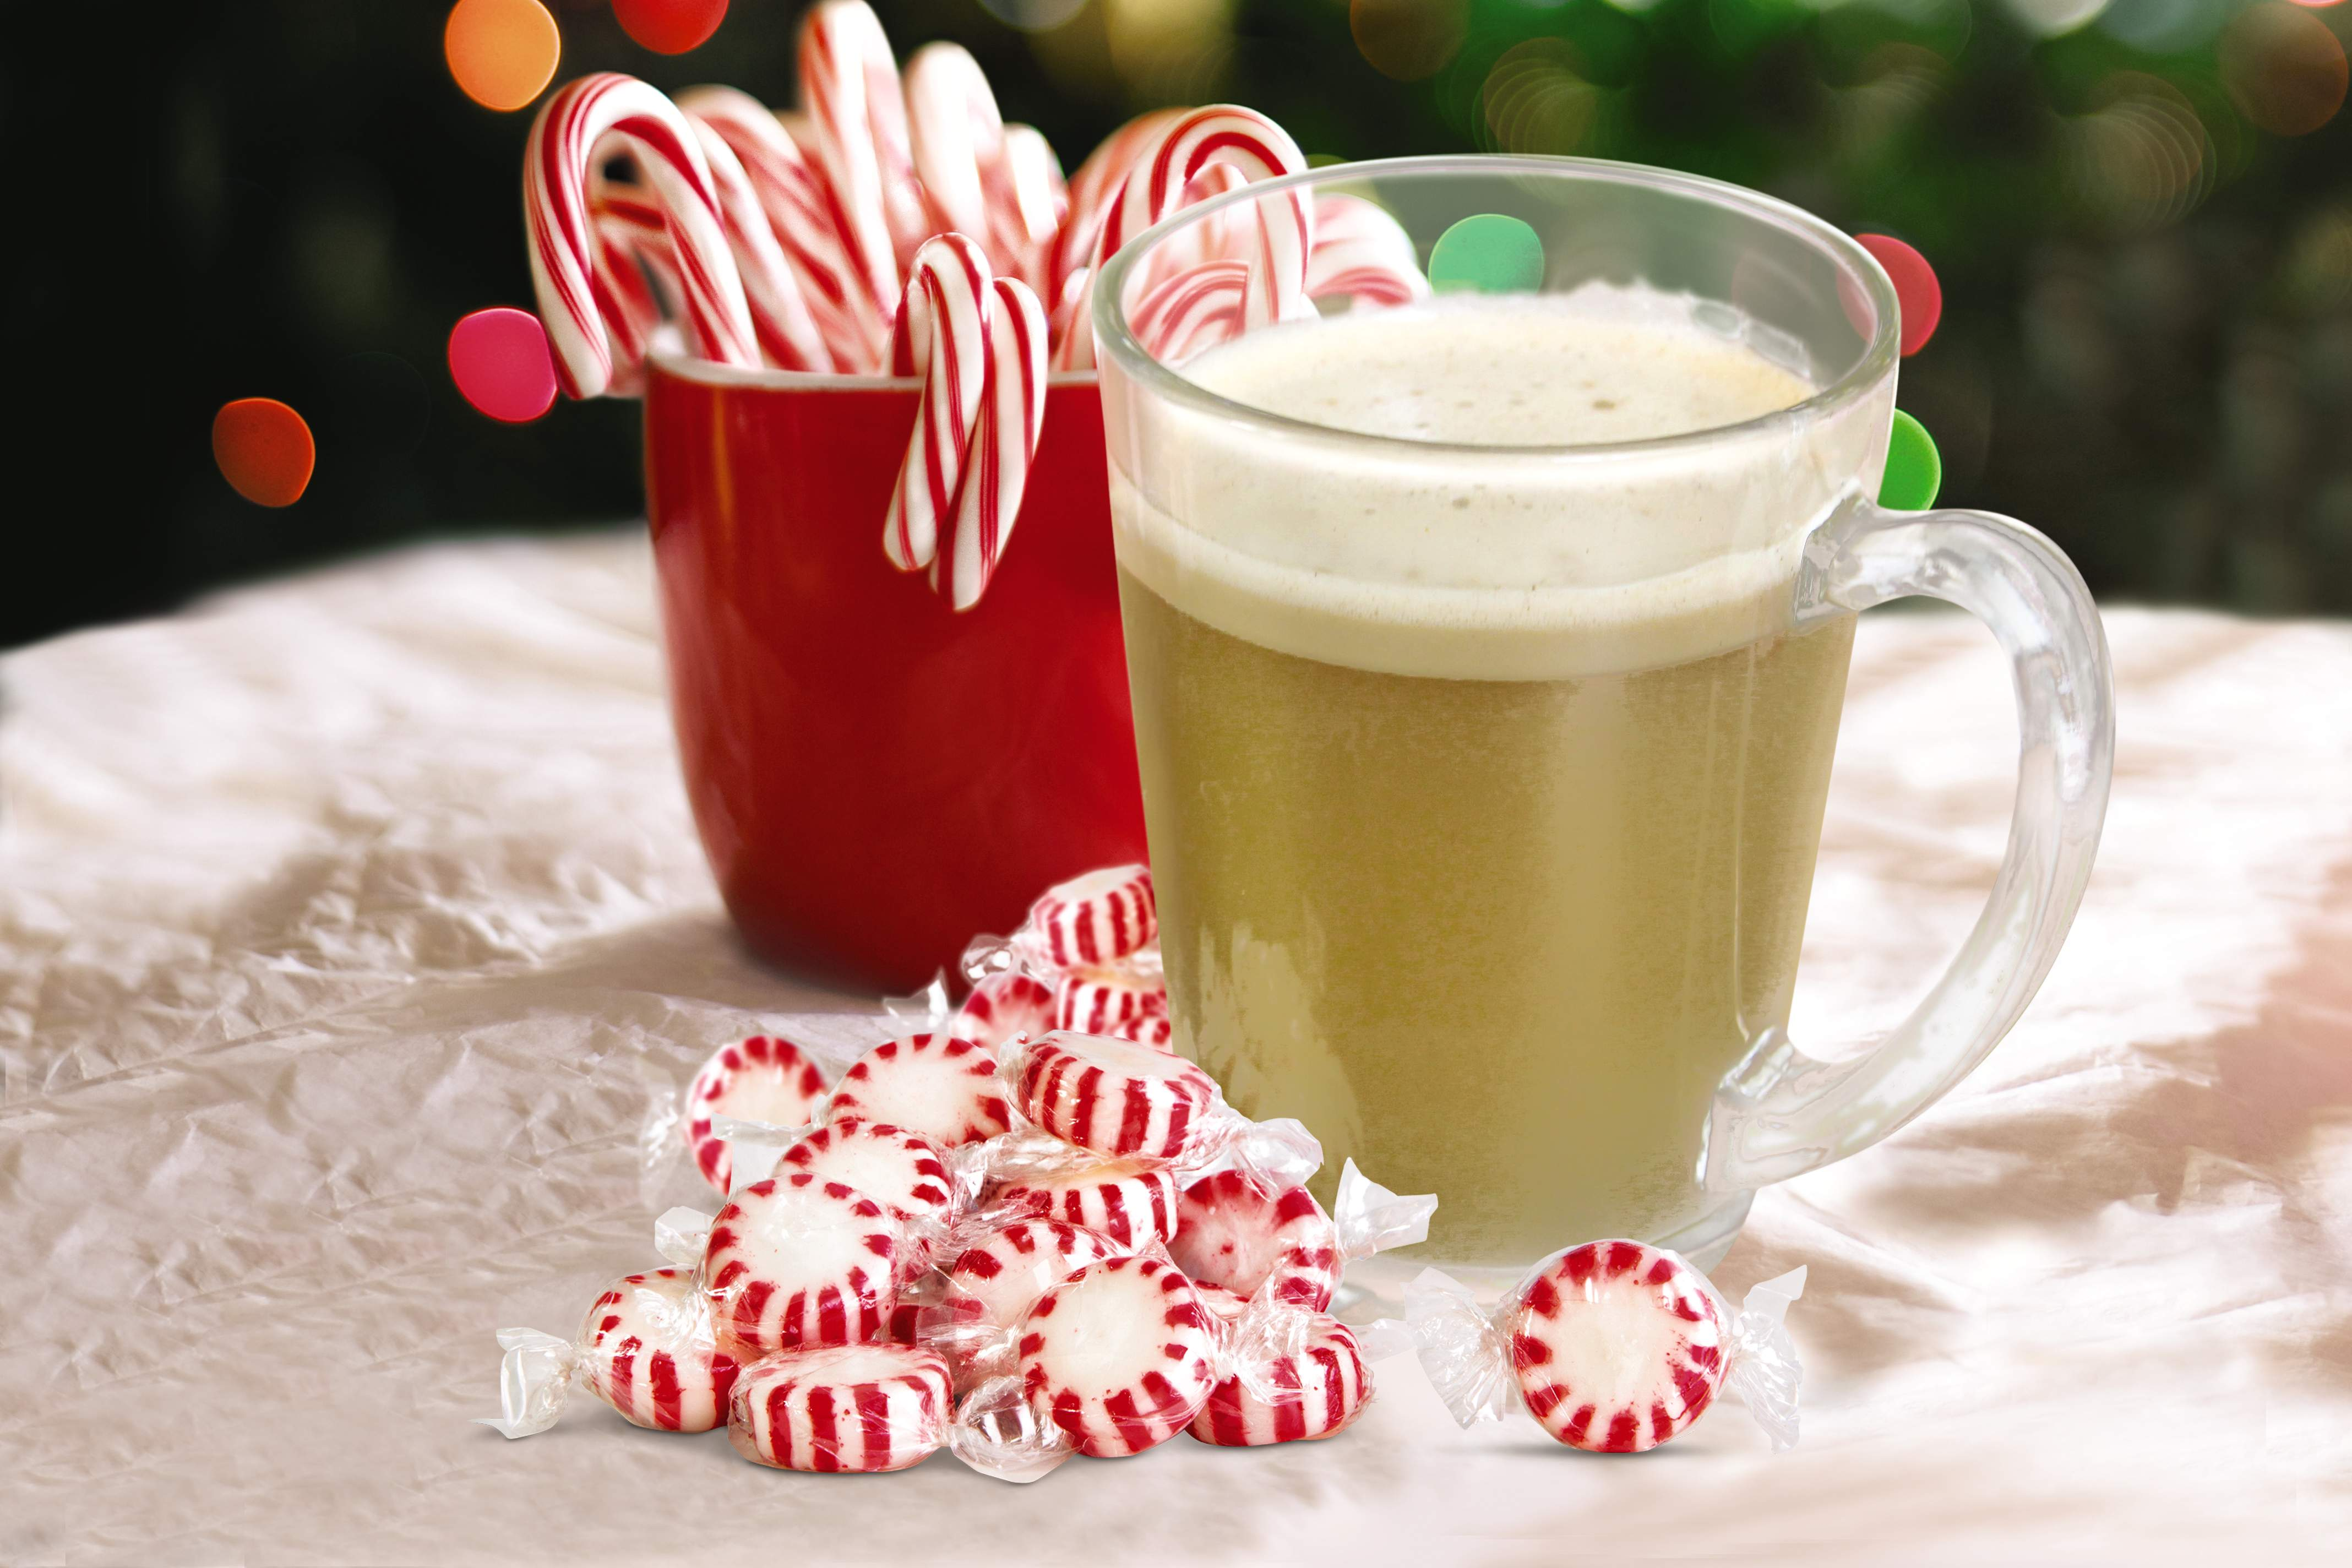 Buttered Peppermint Rum with peppermint candies. View recipe.